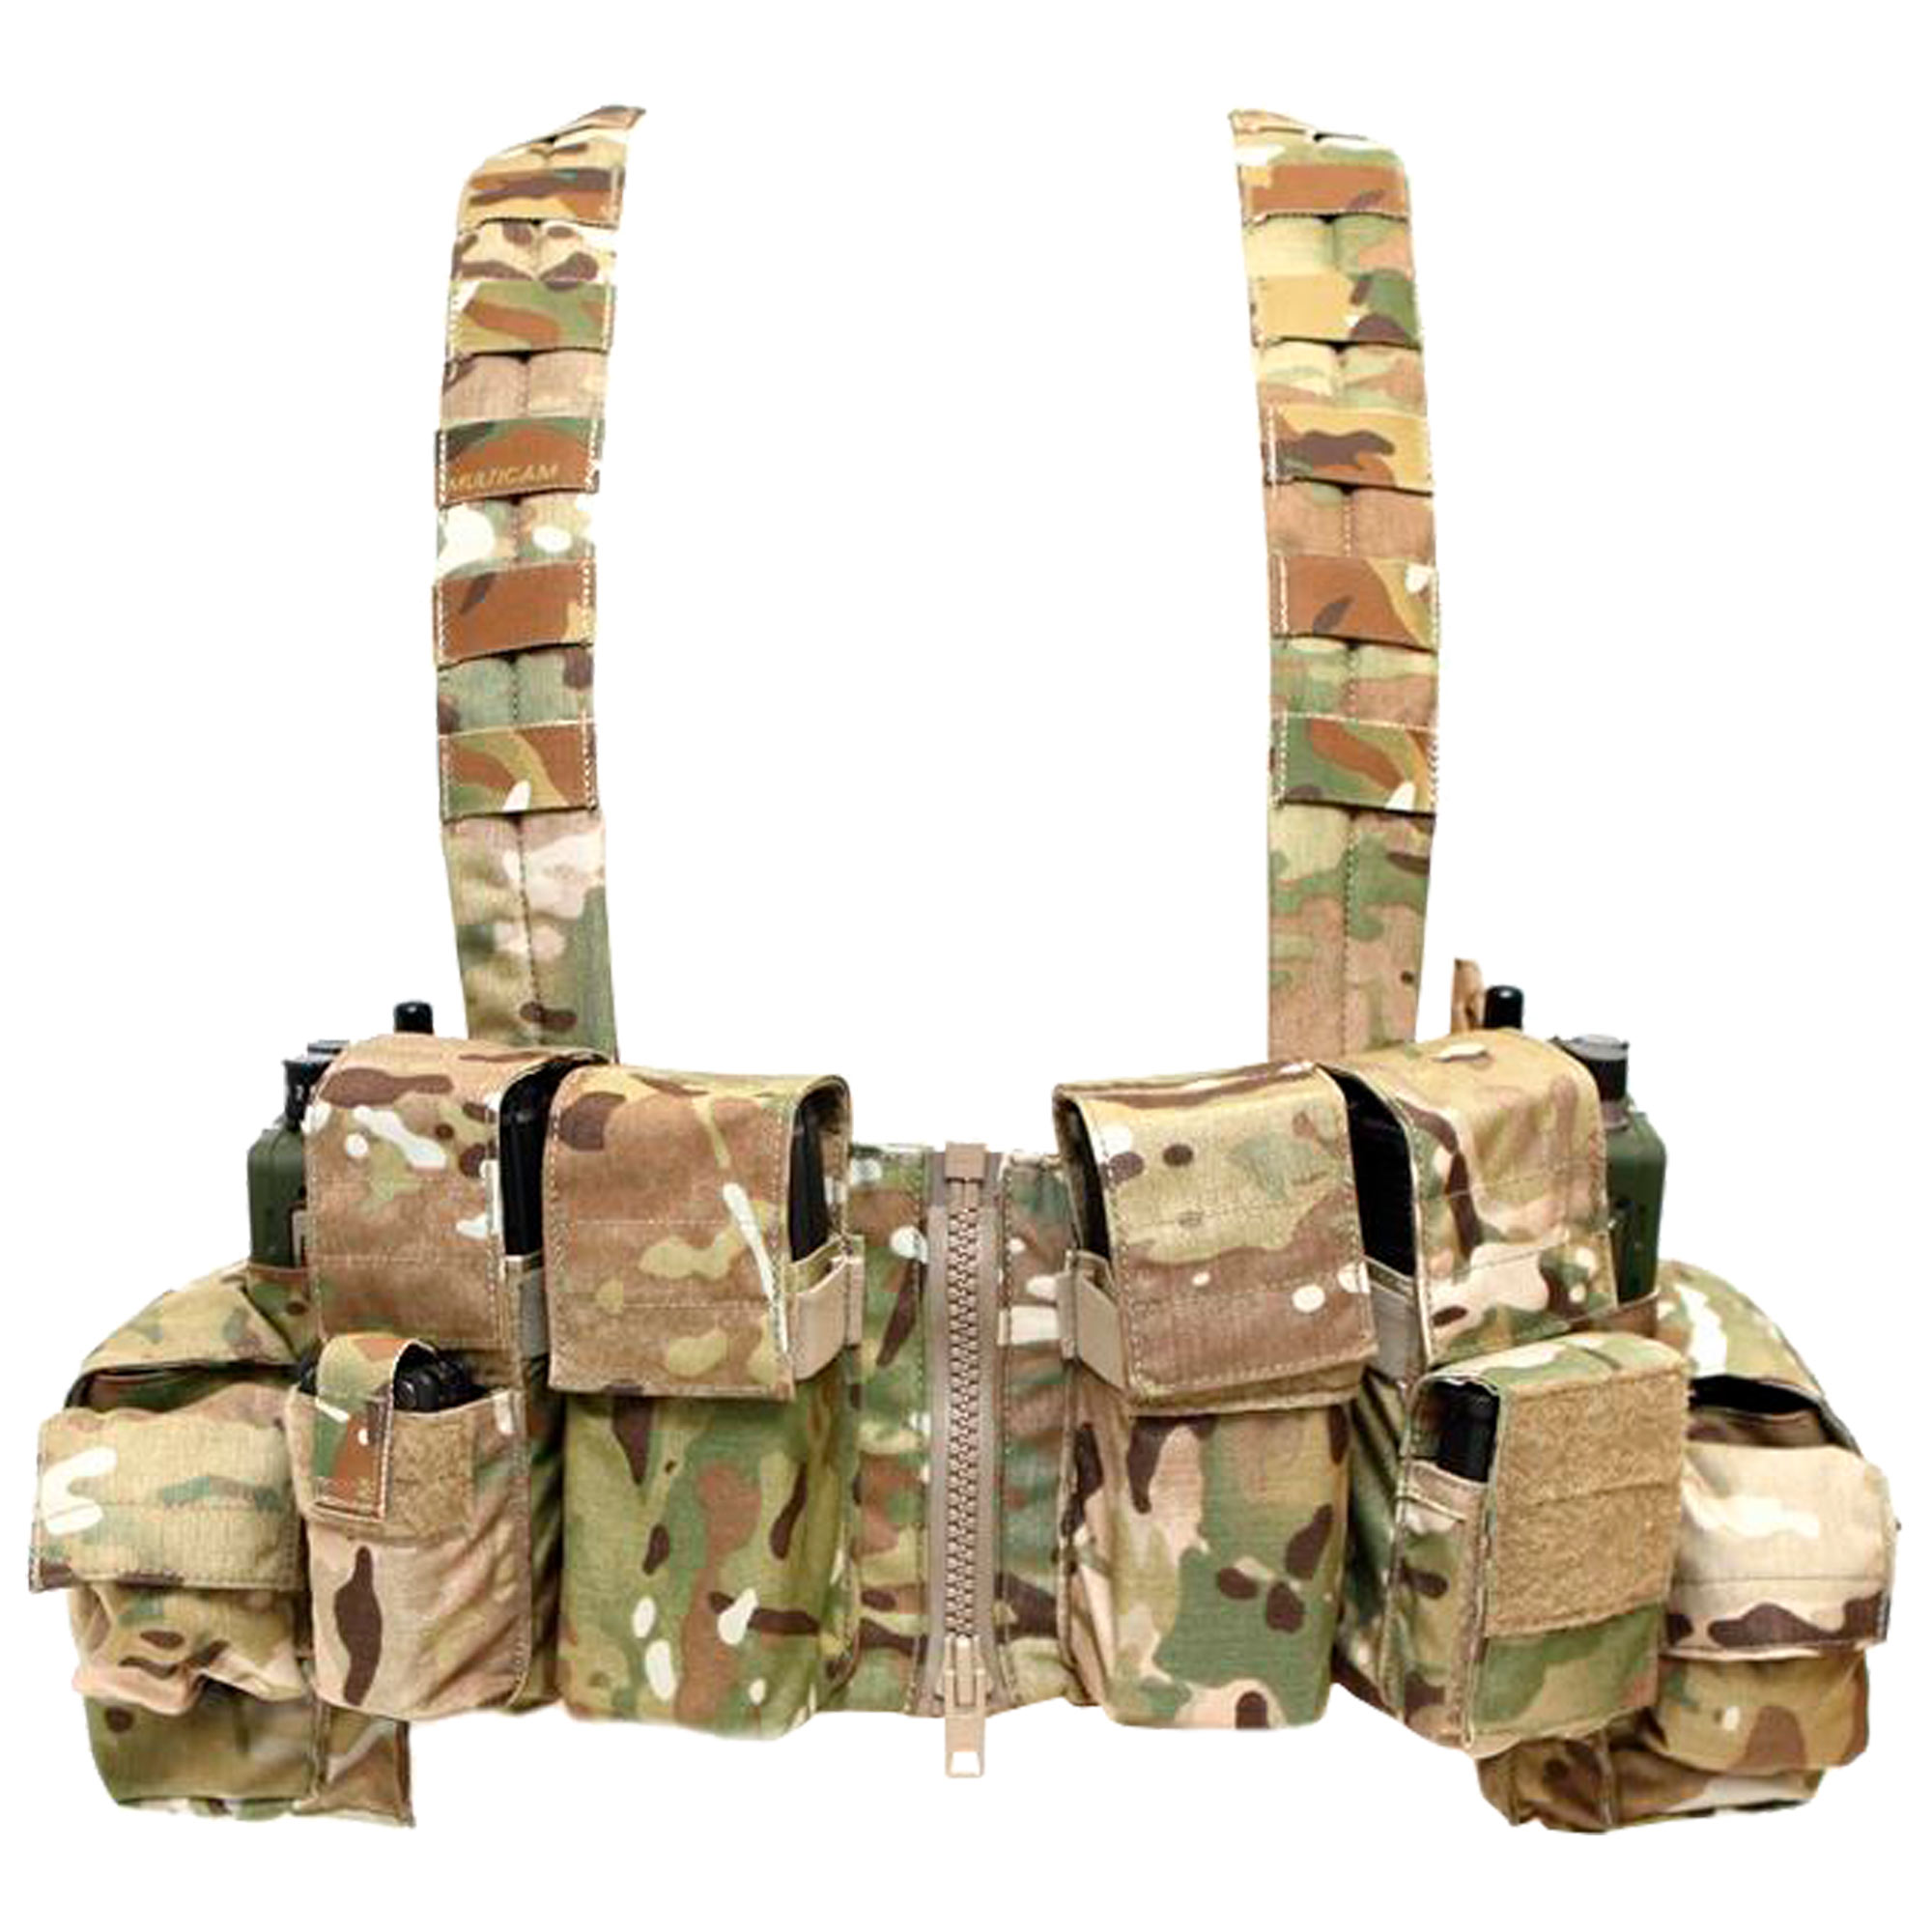 LBX Chest Rig Lock and Load multicam